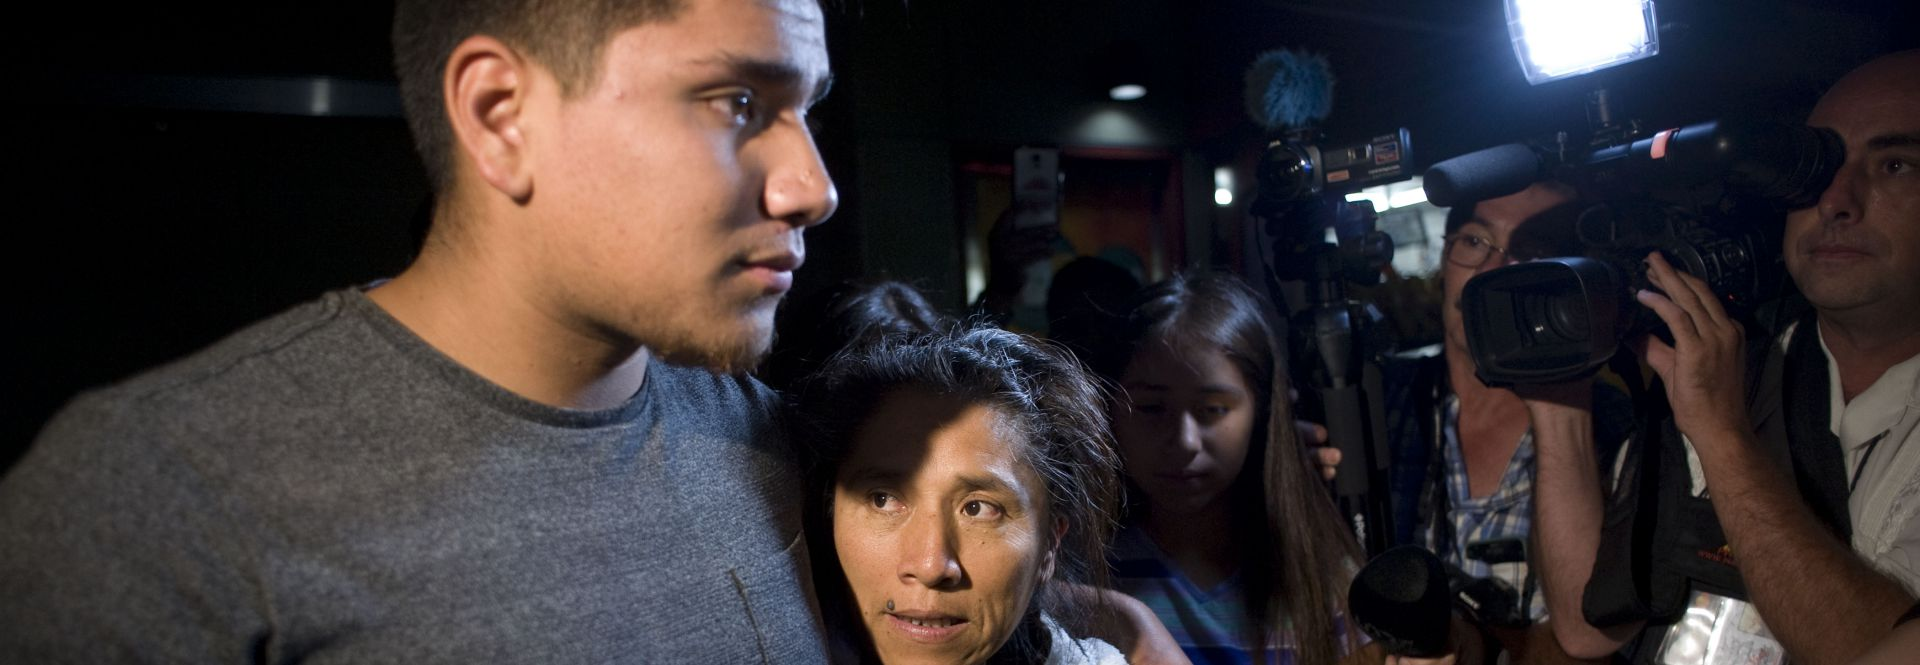 Photo provided on June 20, 2017 showing Mexican Rosenda Perez (C) next to her older son Francisco Duarte Jr., after being freed just a sort distance from the international border crossing with Mexico in San Ysidro, San Diego, California, United States on June 19, 2017. EFE/David Maung